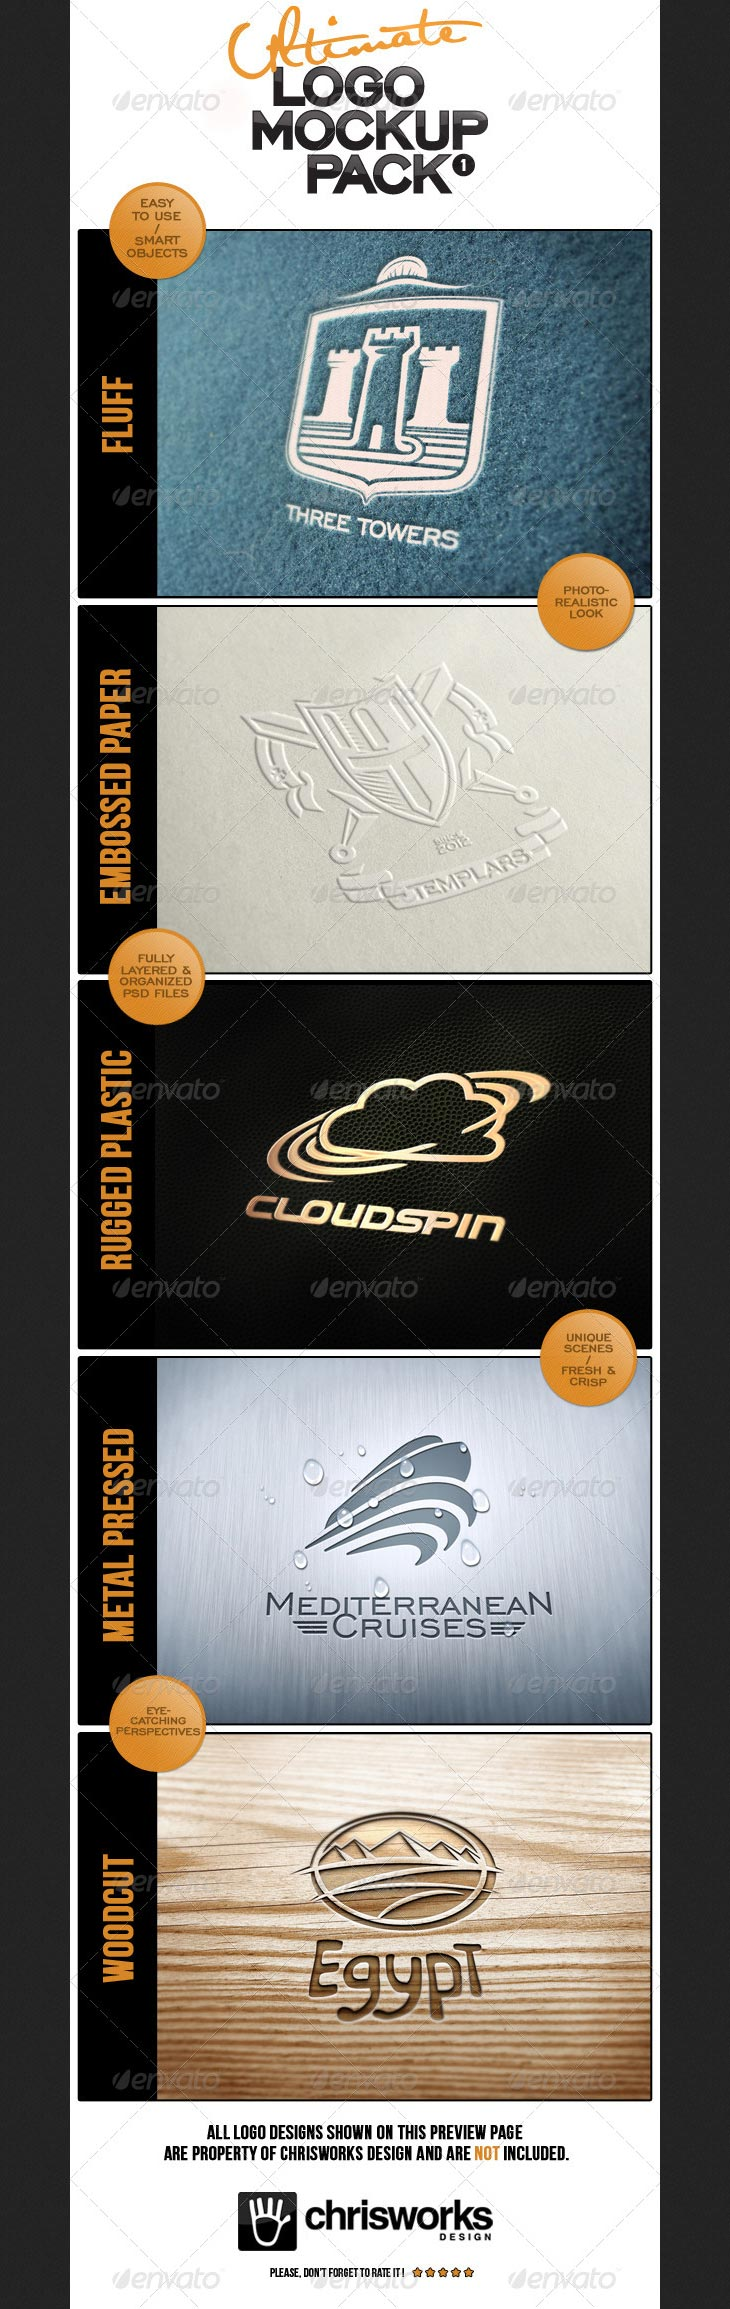 Ultimate Logo Mock-Up Pack